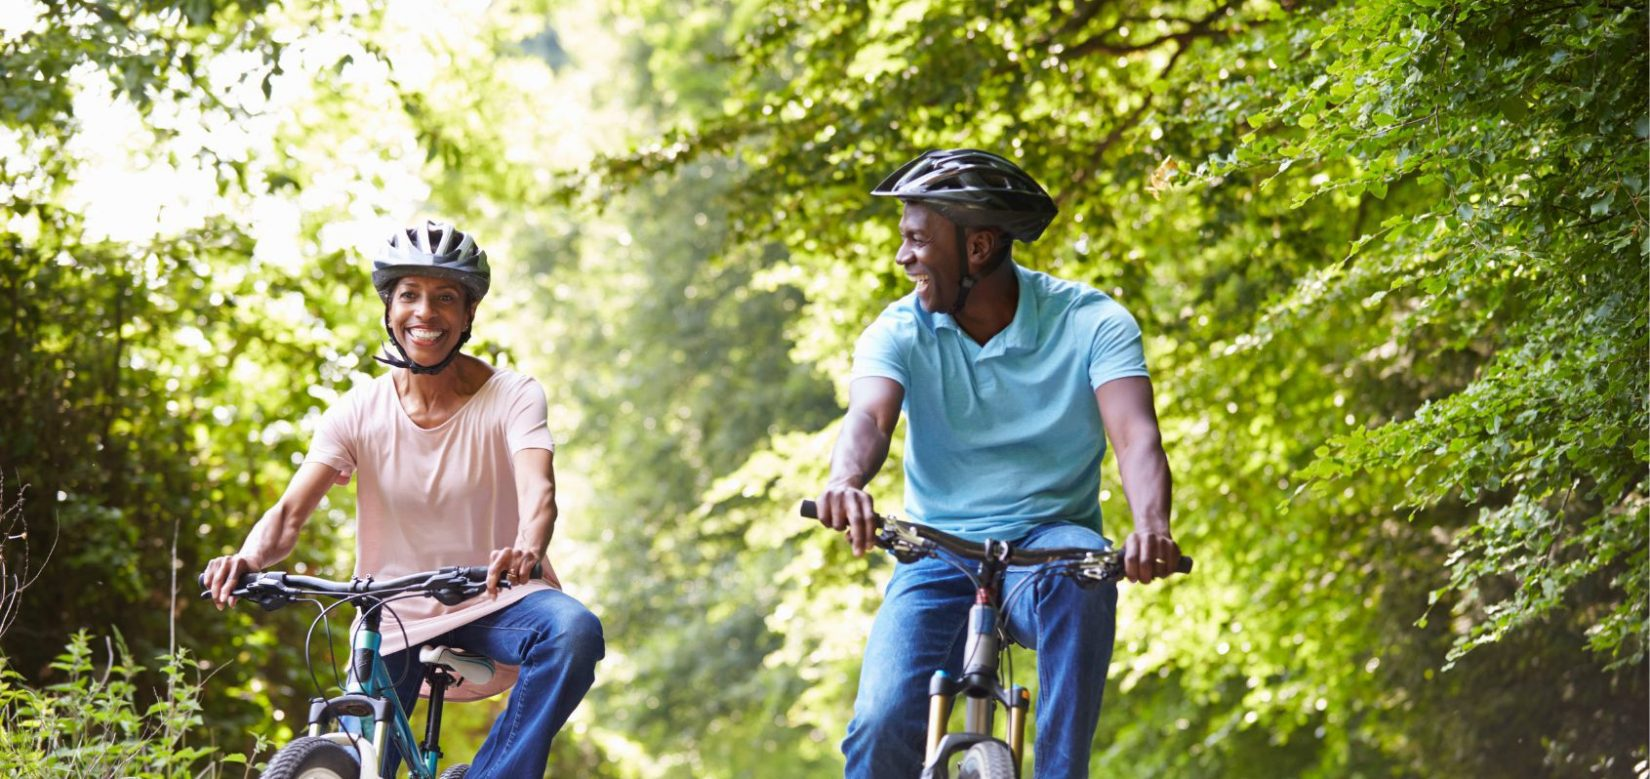 Middle-aged couple smiling while riding bikes on a sunny day